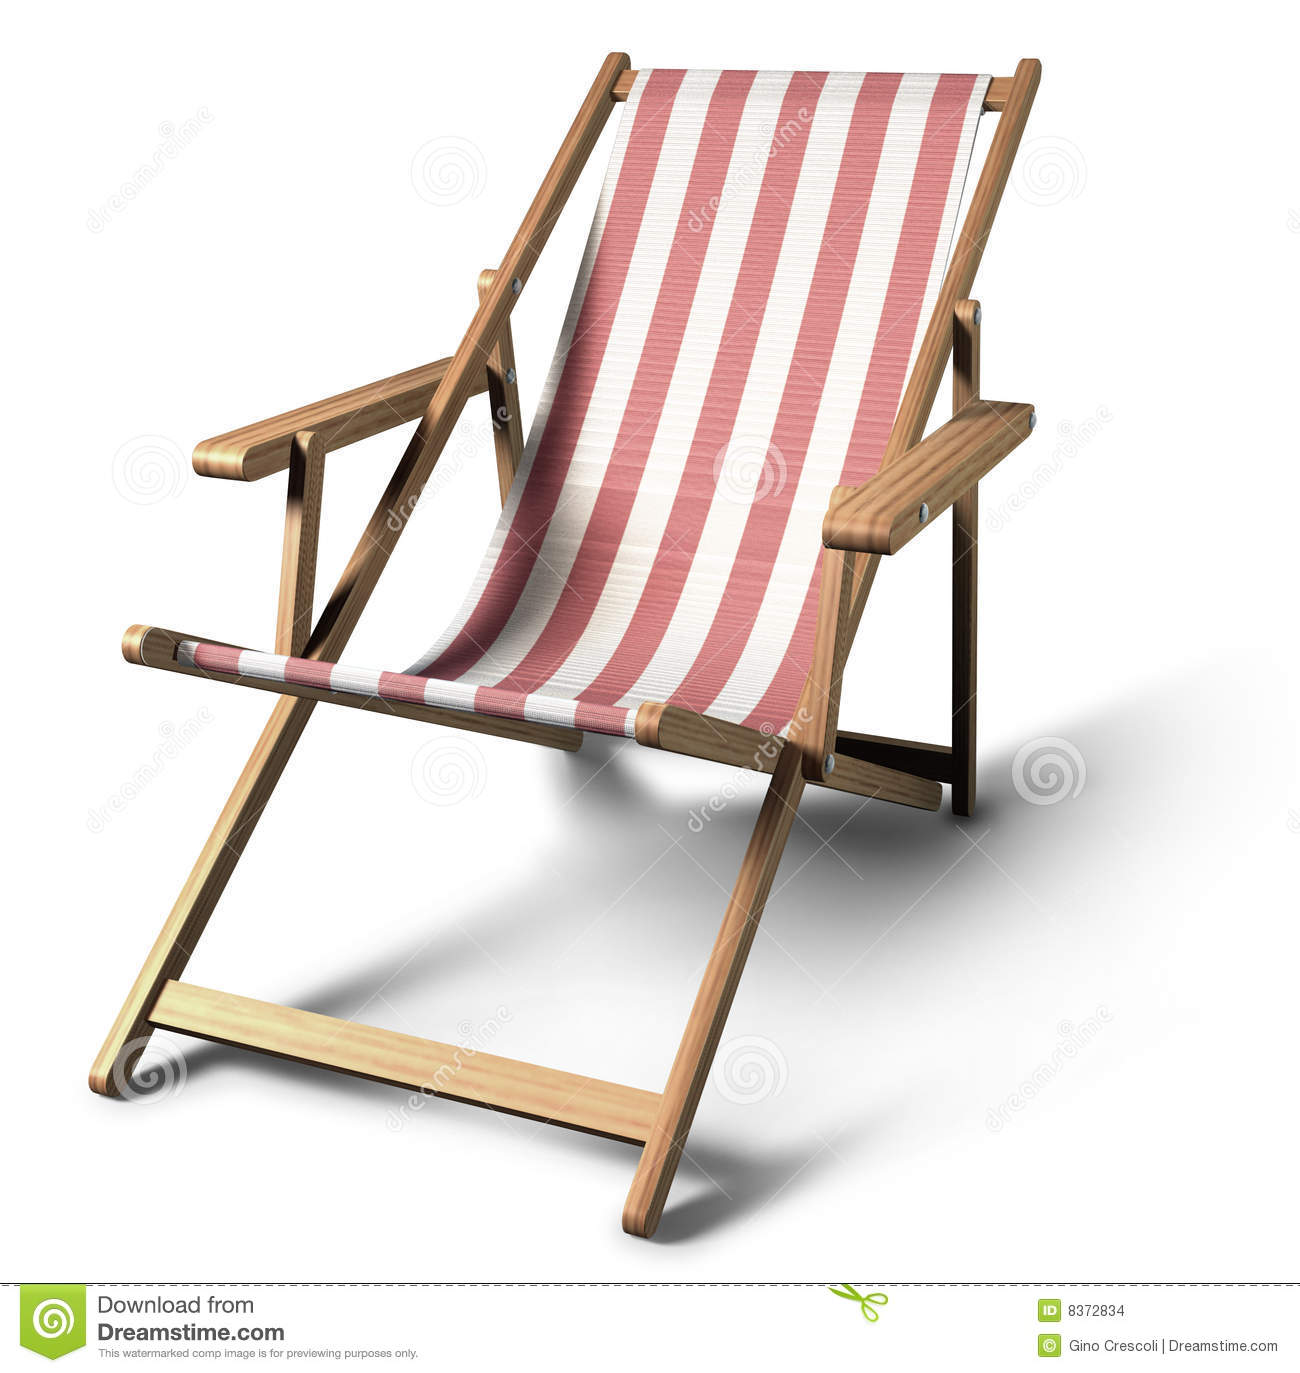 Illustration of a folding beach chair, with clipping path and shadow.